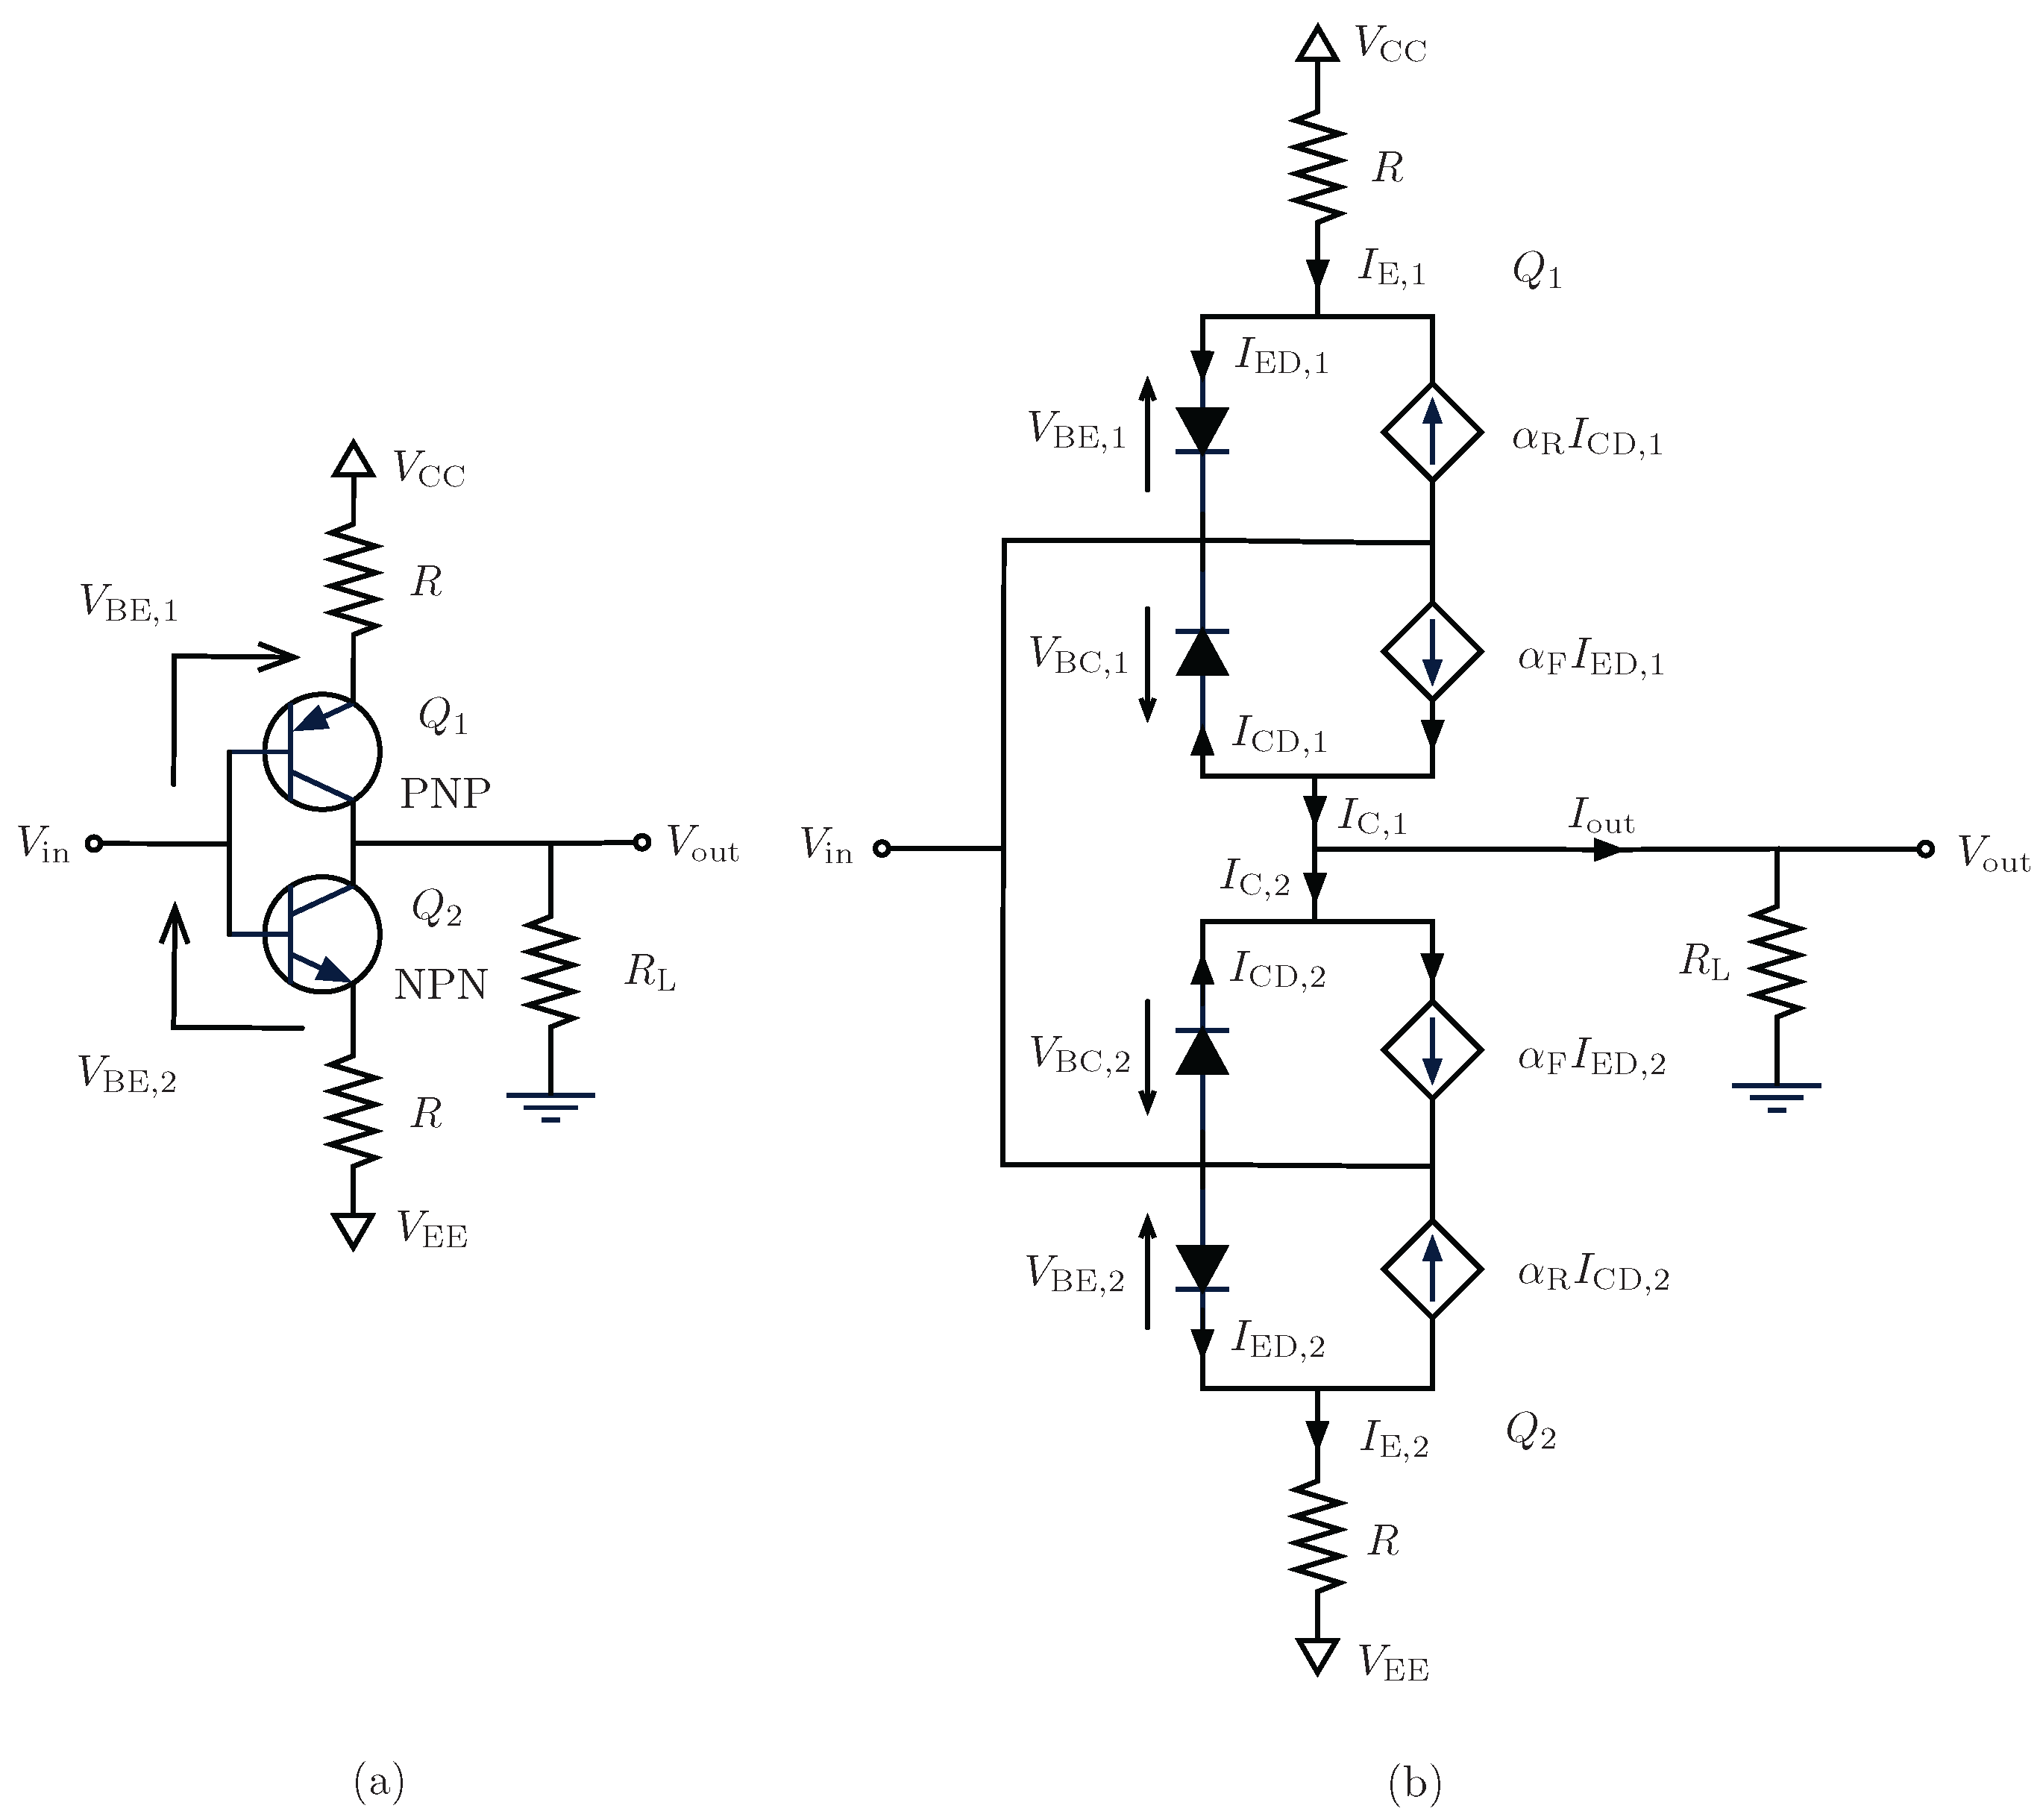 Applied Sciences Free Full Text Virtual Analog Models Of The Guitar Effects Pedal Circuit On Variable Resistor Diagram Applsci 07 01328 G001 Figure 1 A Simplified Schematic